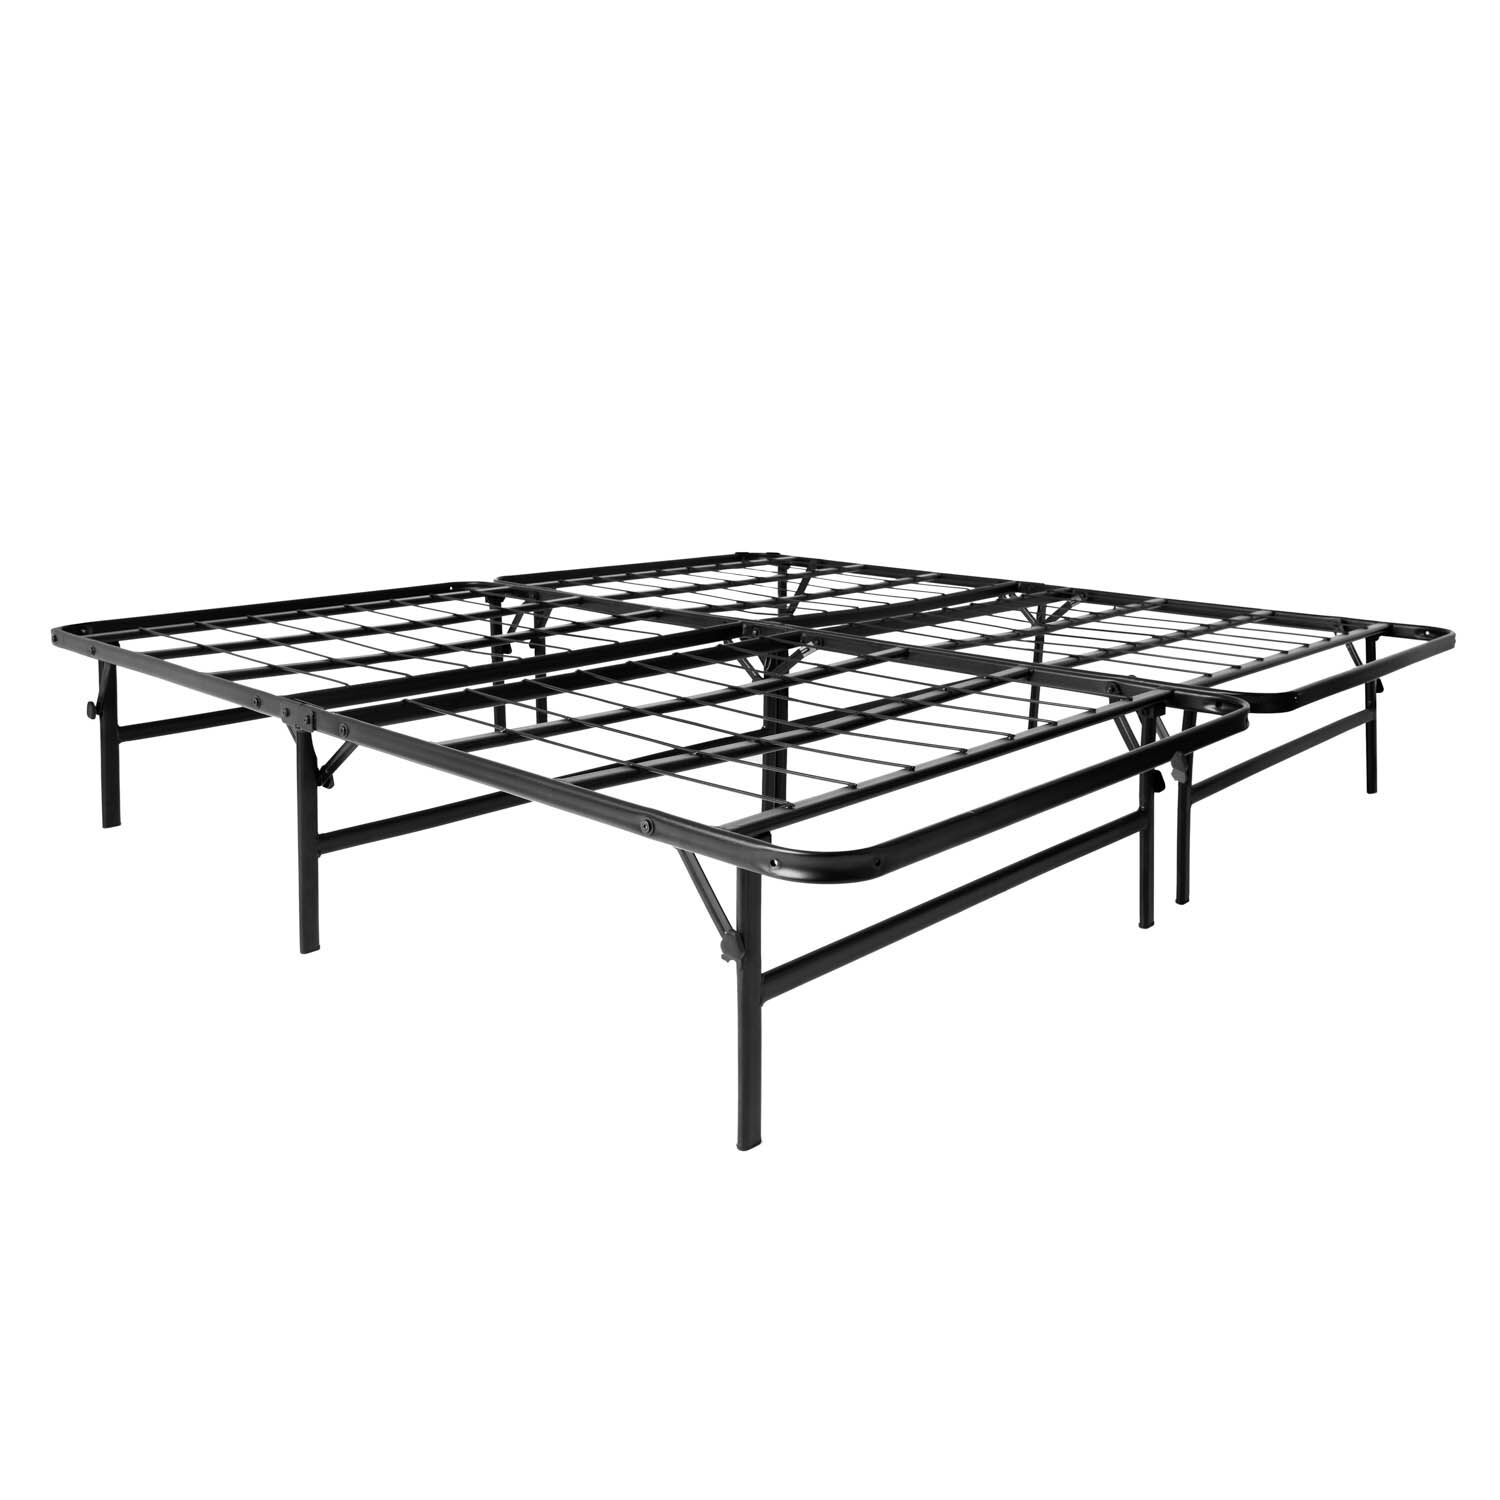 Ernestine HD Bed Frame Size: Queen